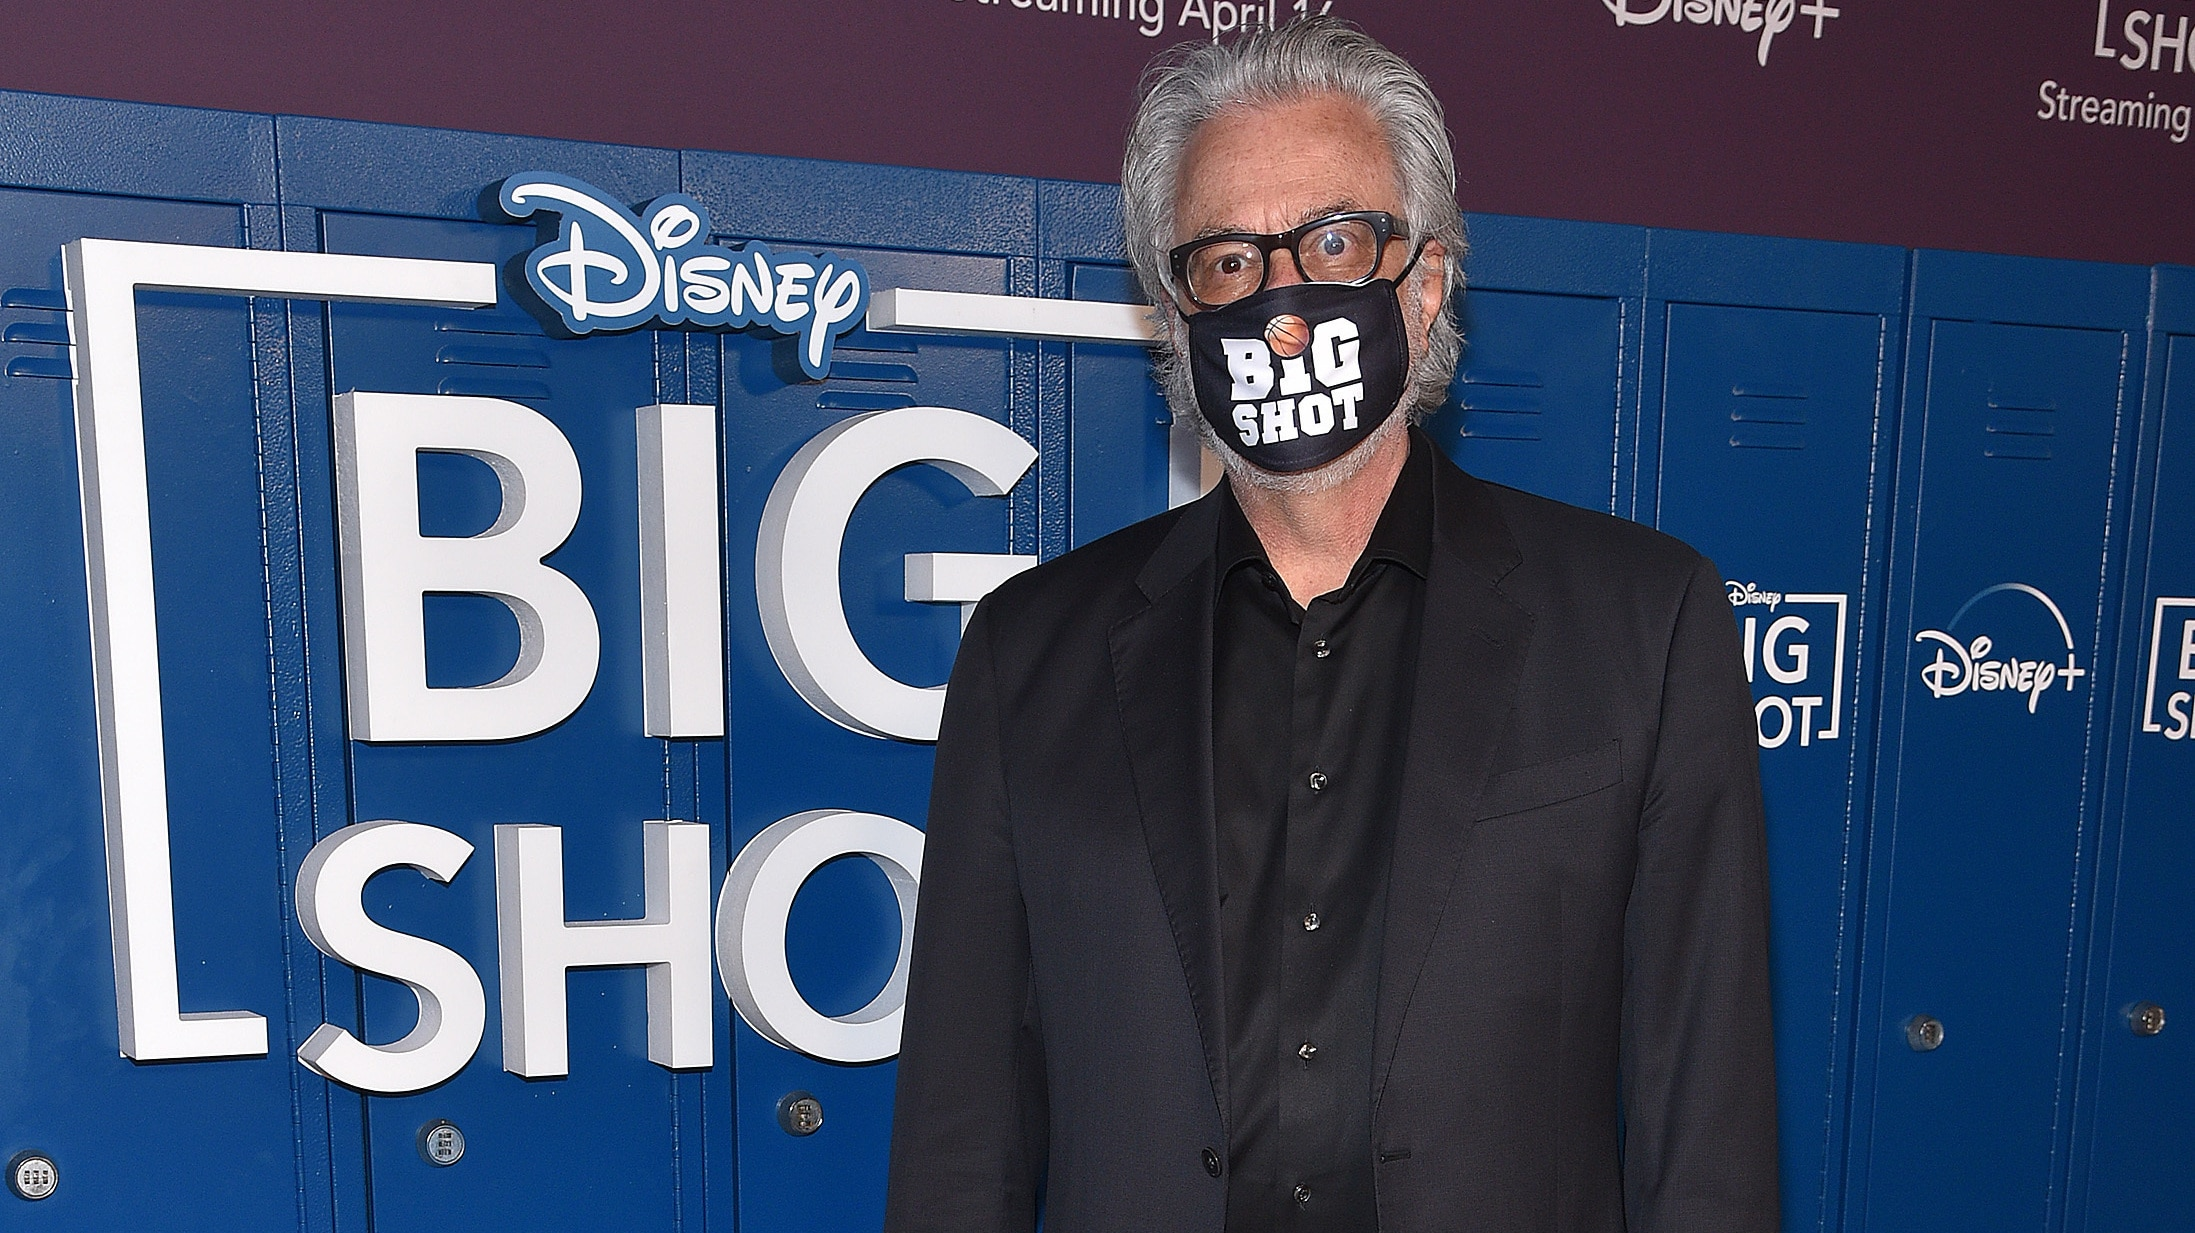 LOS ANGELES, CA - APRIL 14: Executive Producer Bill DíElia attends the world premiere drive-in screening of the Disney + original series ìBIG SHOTî at The Grove in Los Angeles, California on April 14, 2021. (Photo by Stewart Cook/Disney +/PictureGroup)